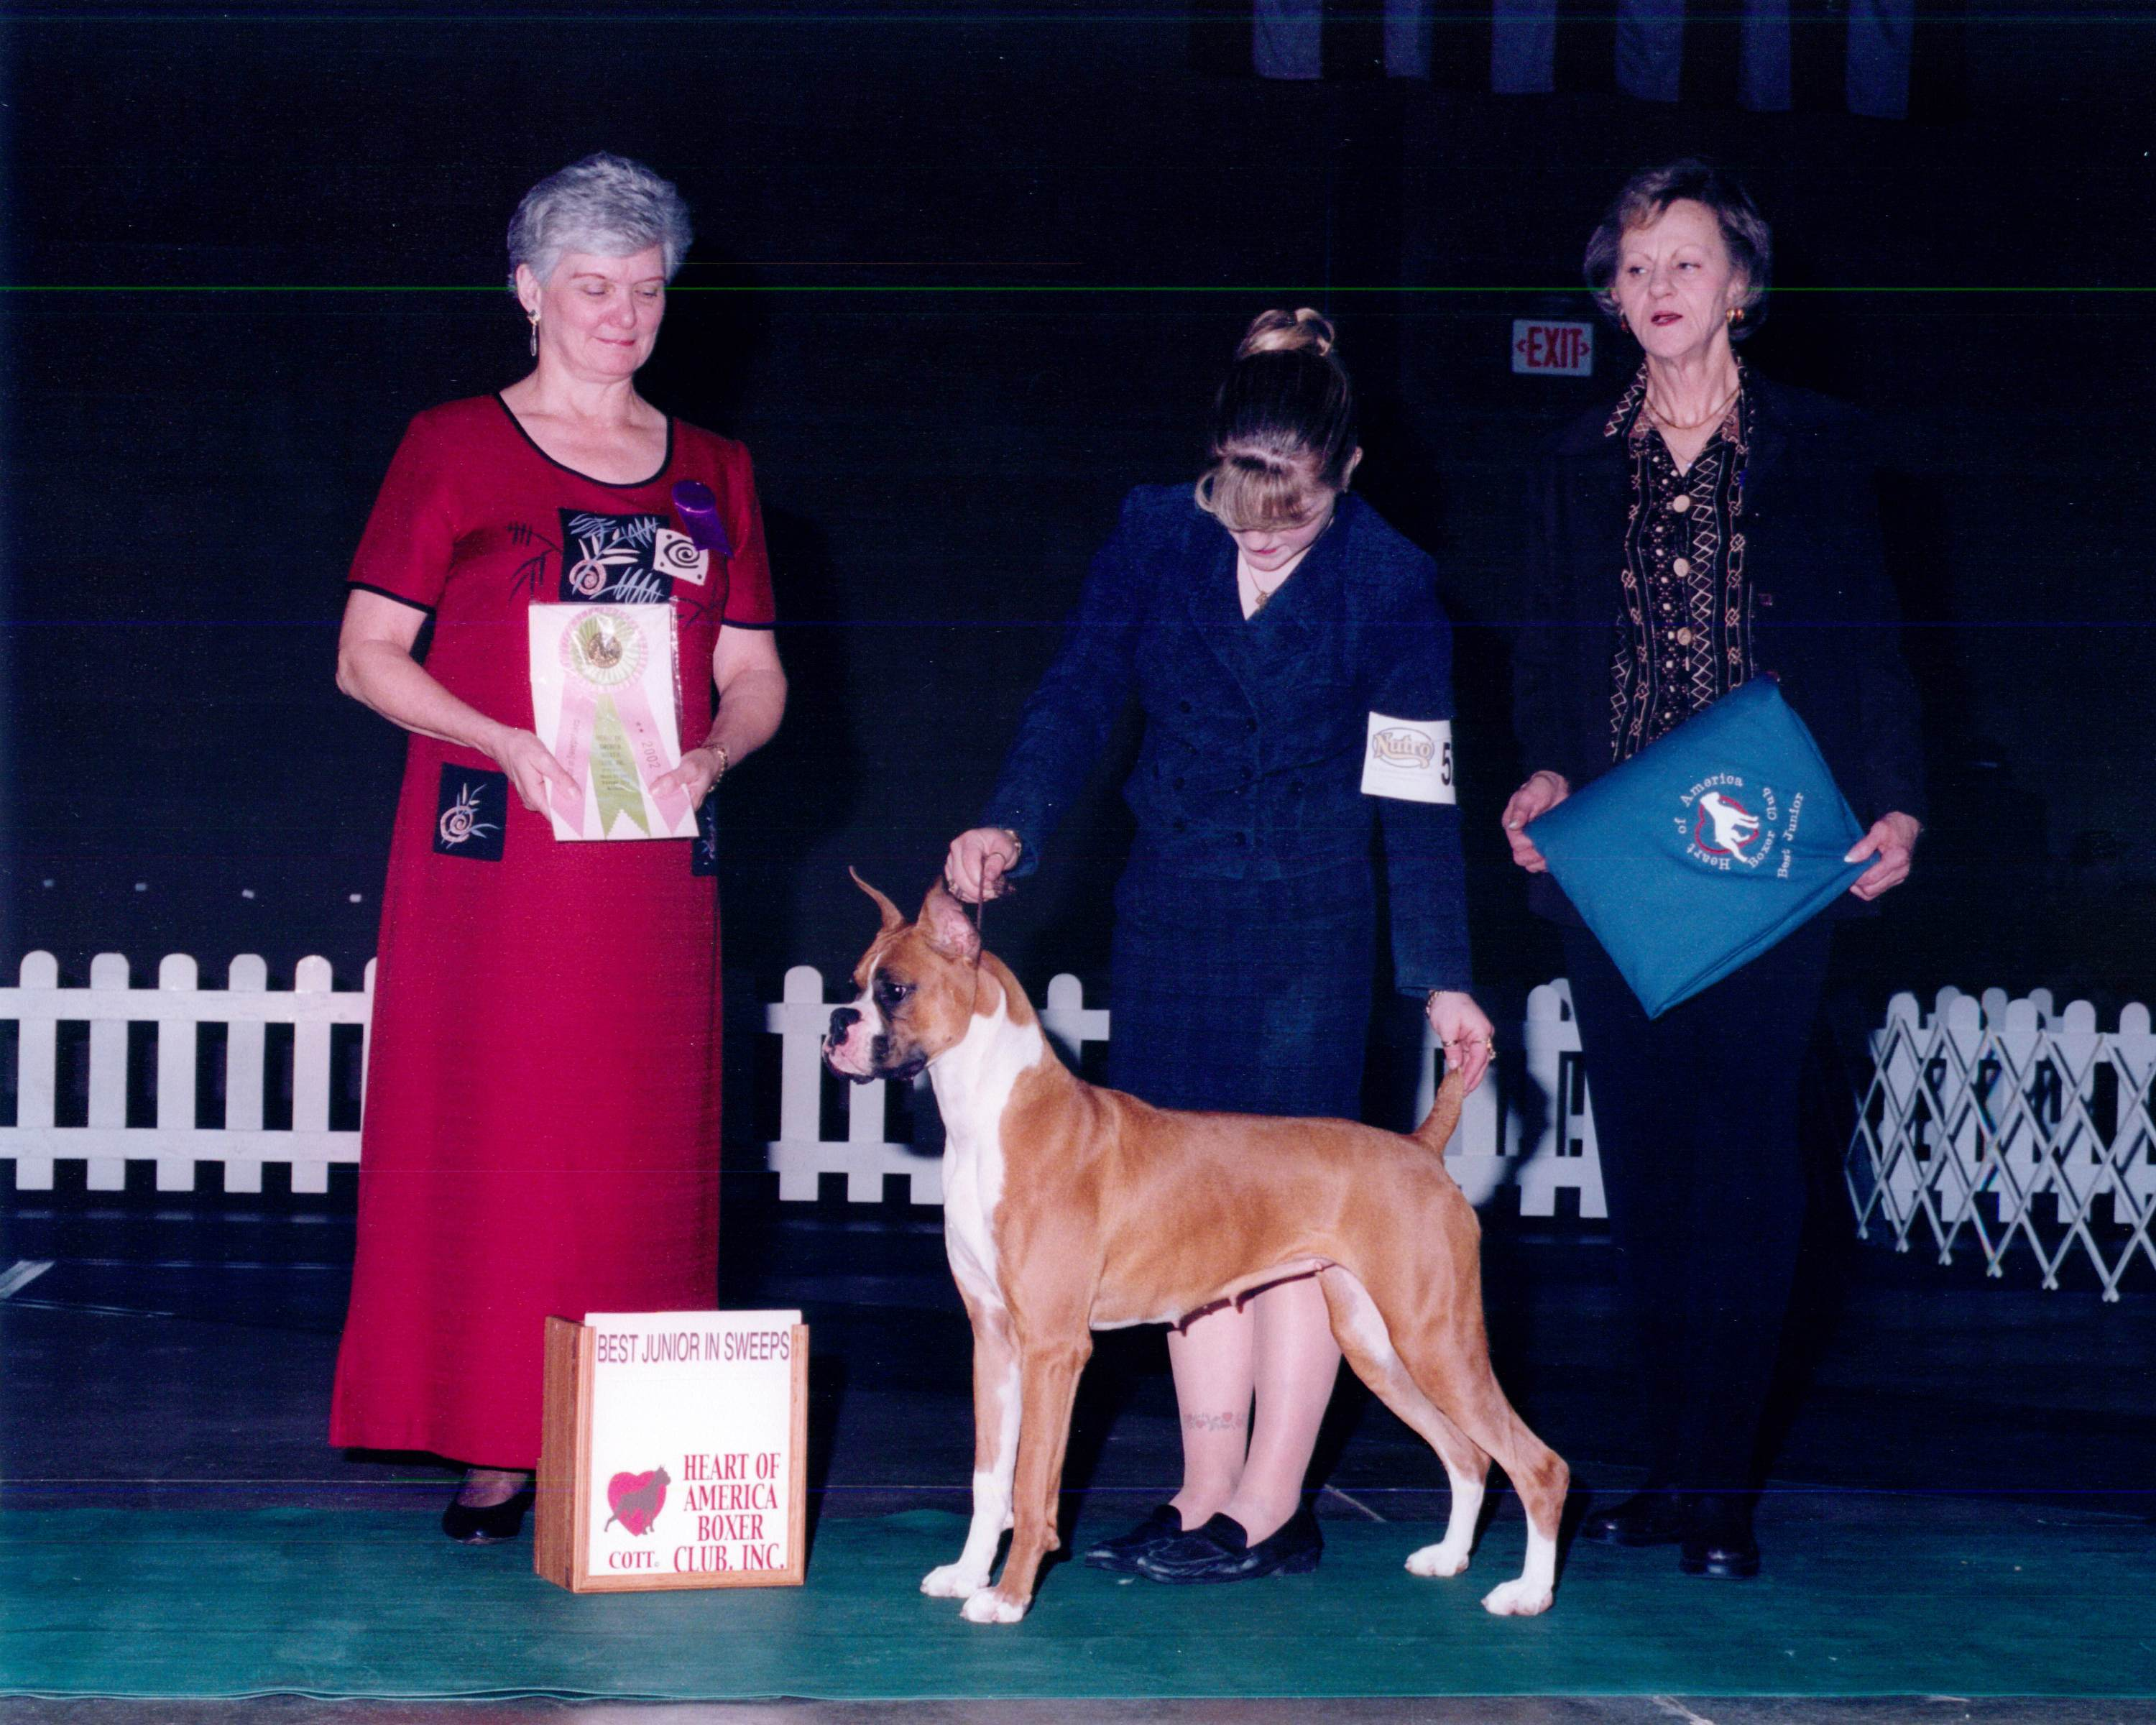 Best Junior @ 2002 Specialty Show #1